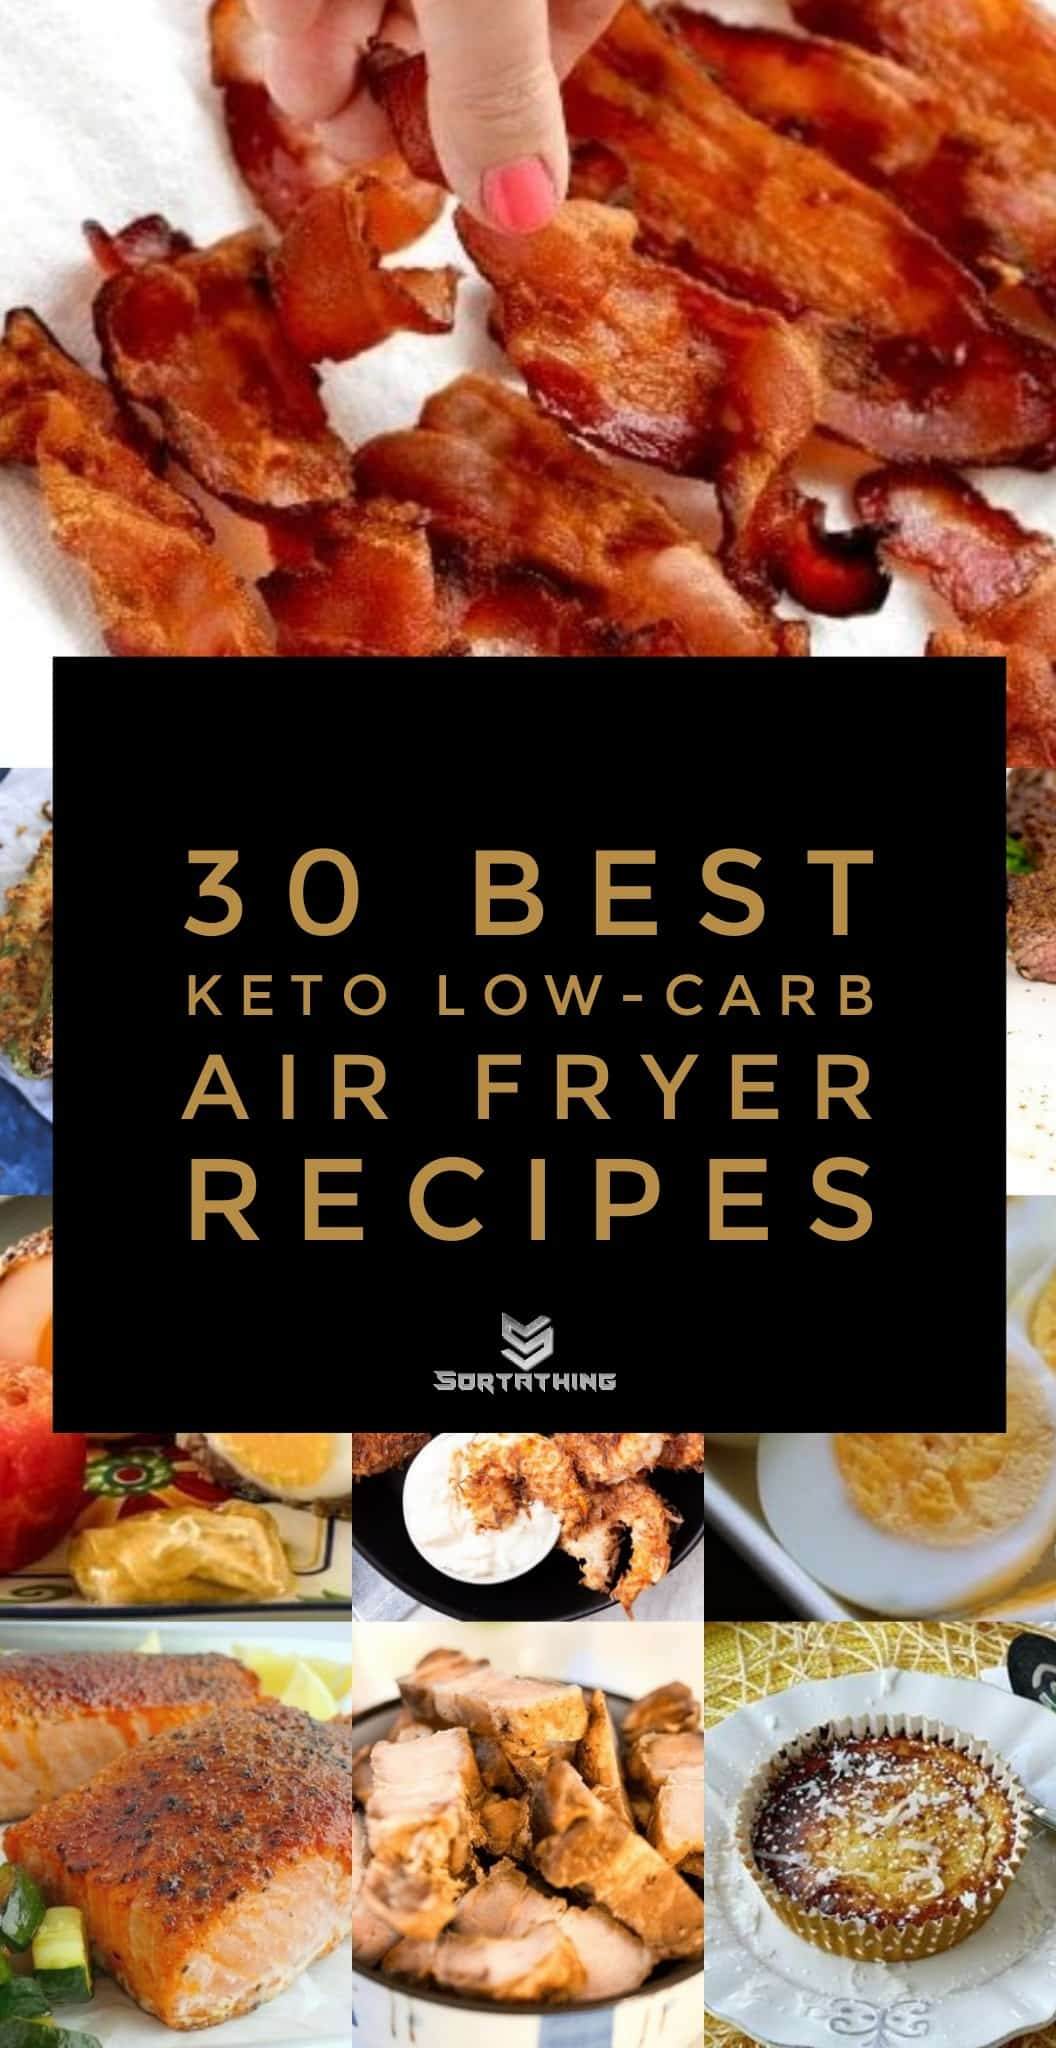 30 Best Keto Low-Carb Air Fryer Recipes 2020